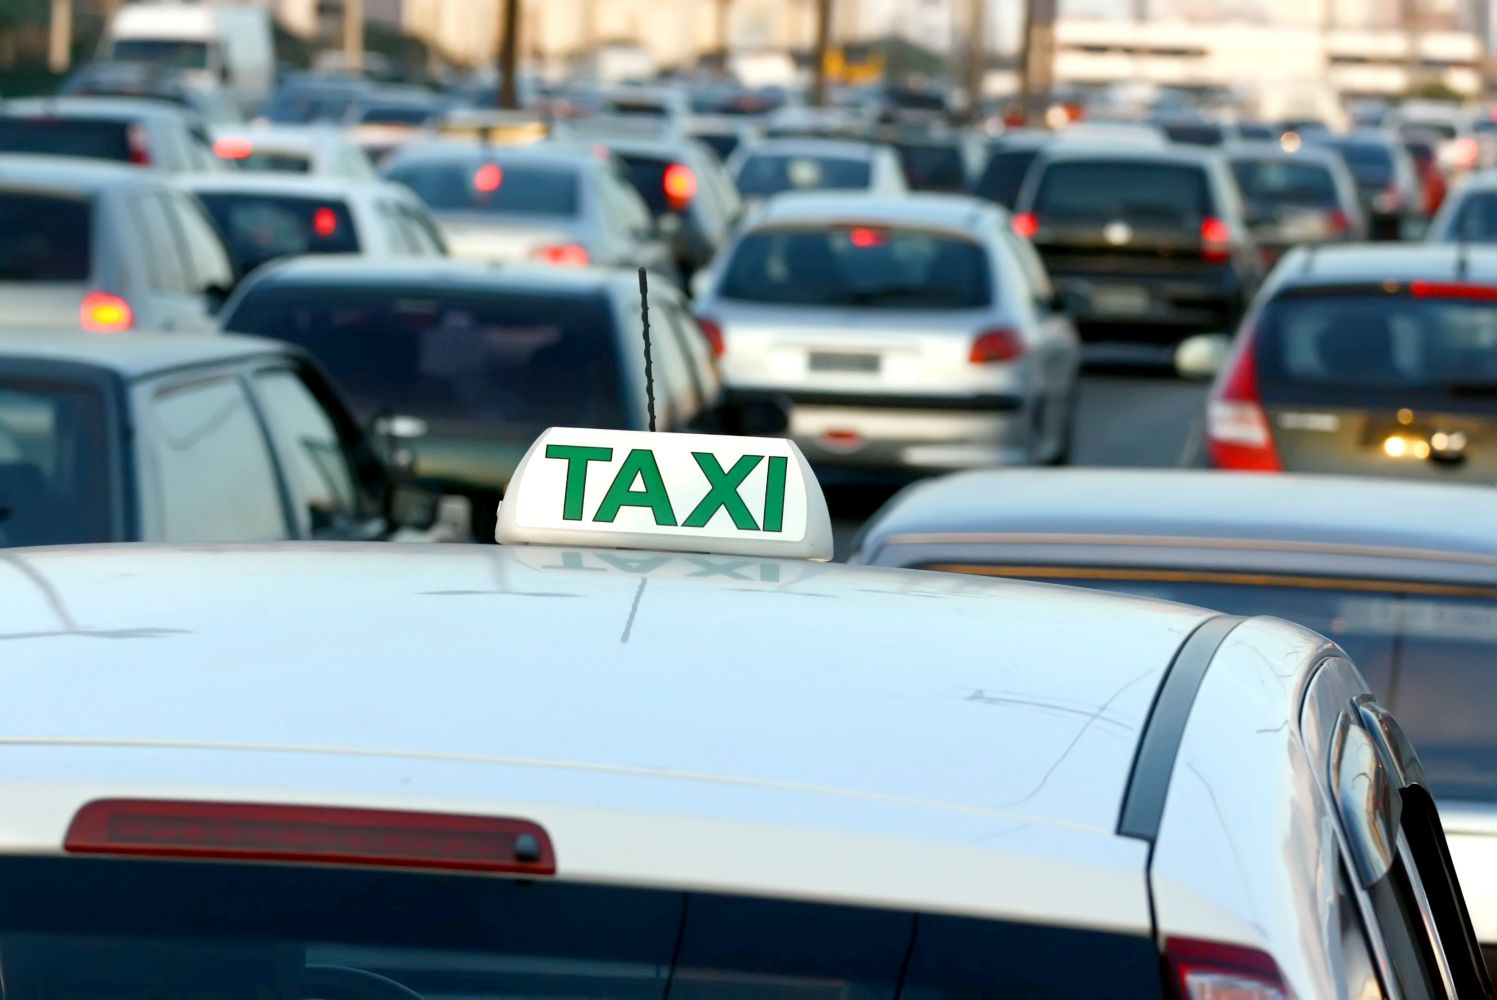 Cab with convenient airport taxi rate among cars in Monroe, NY